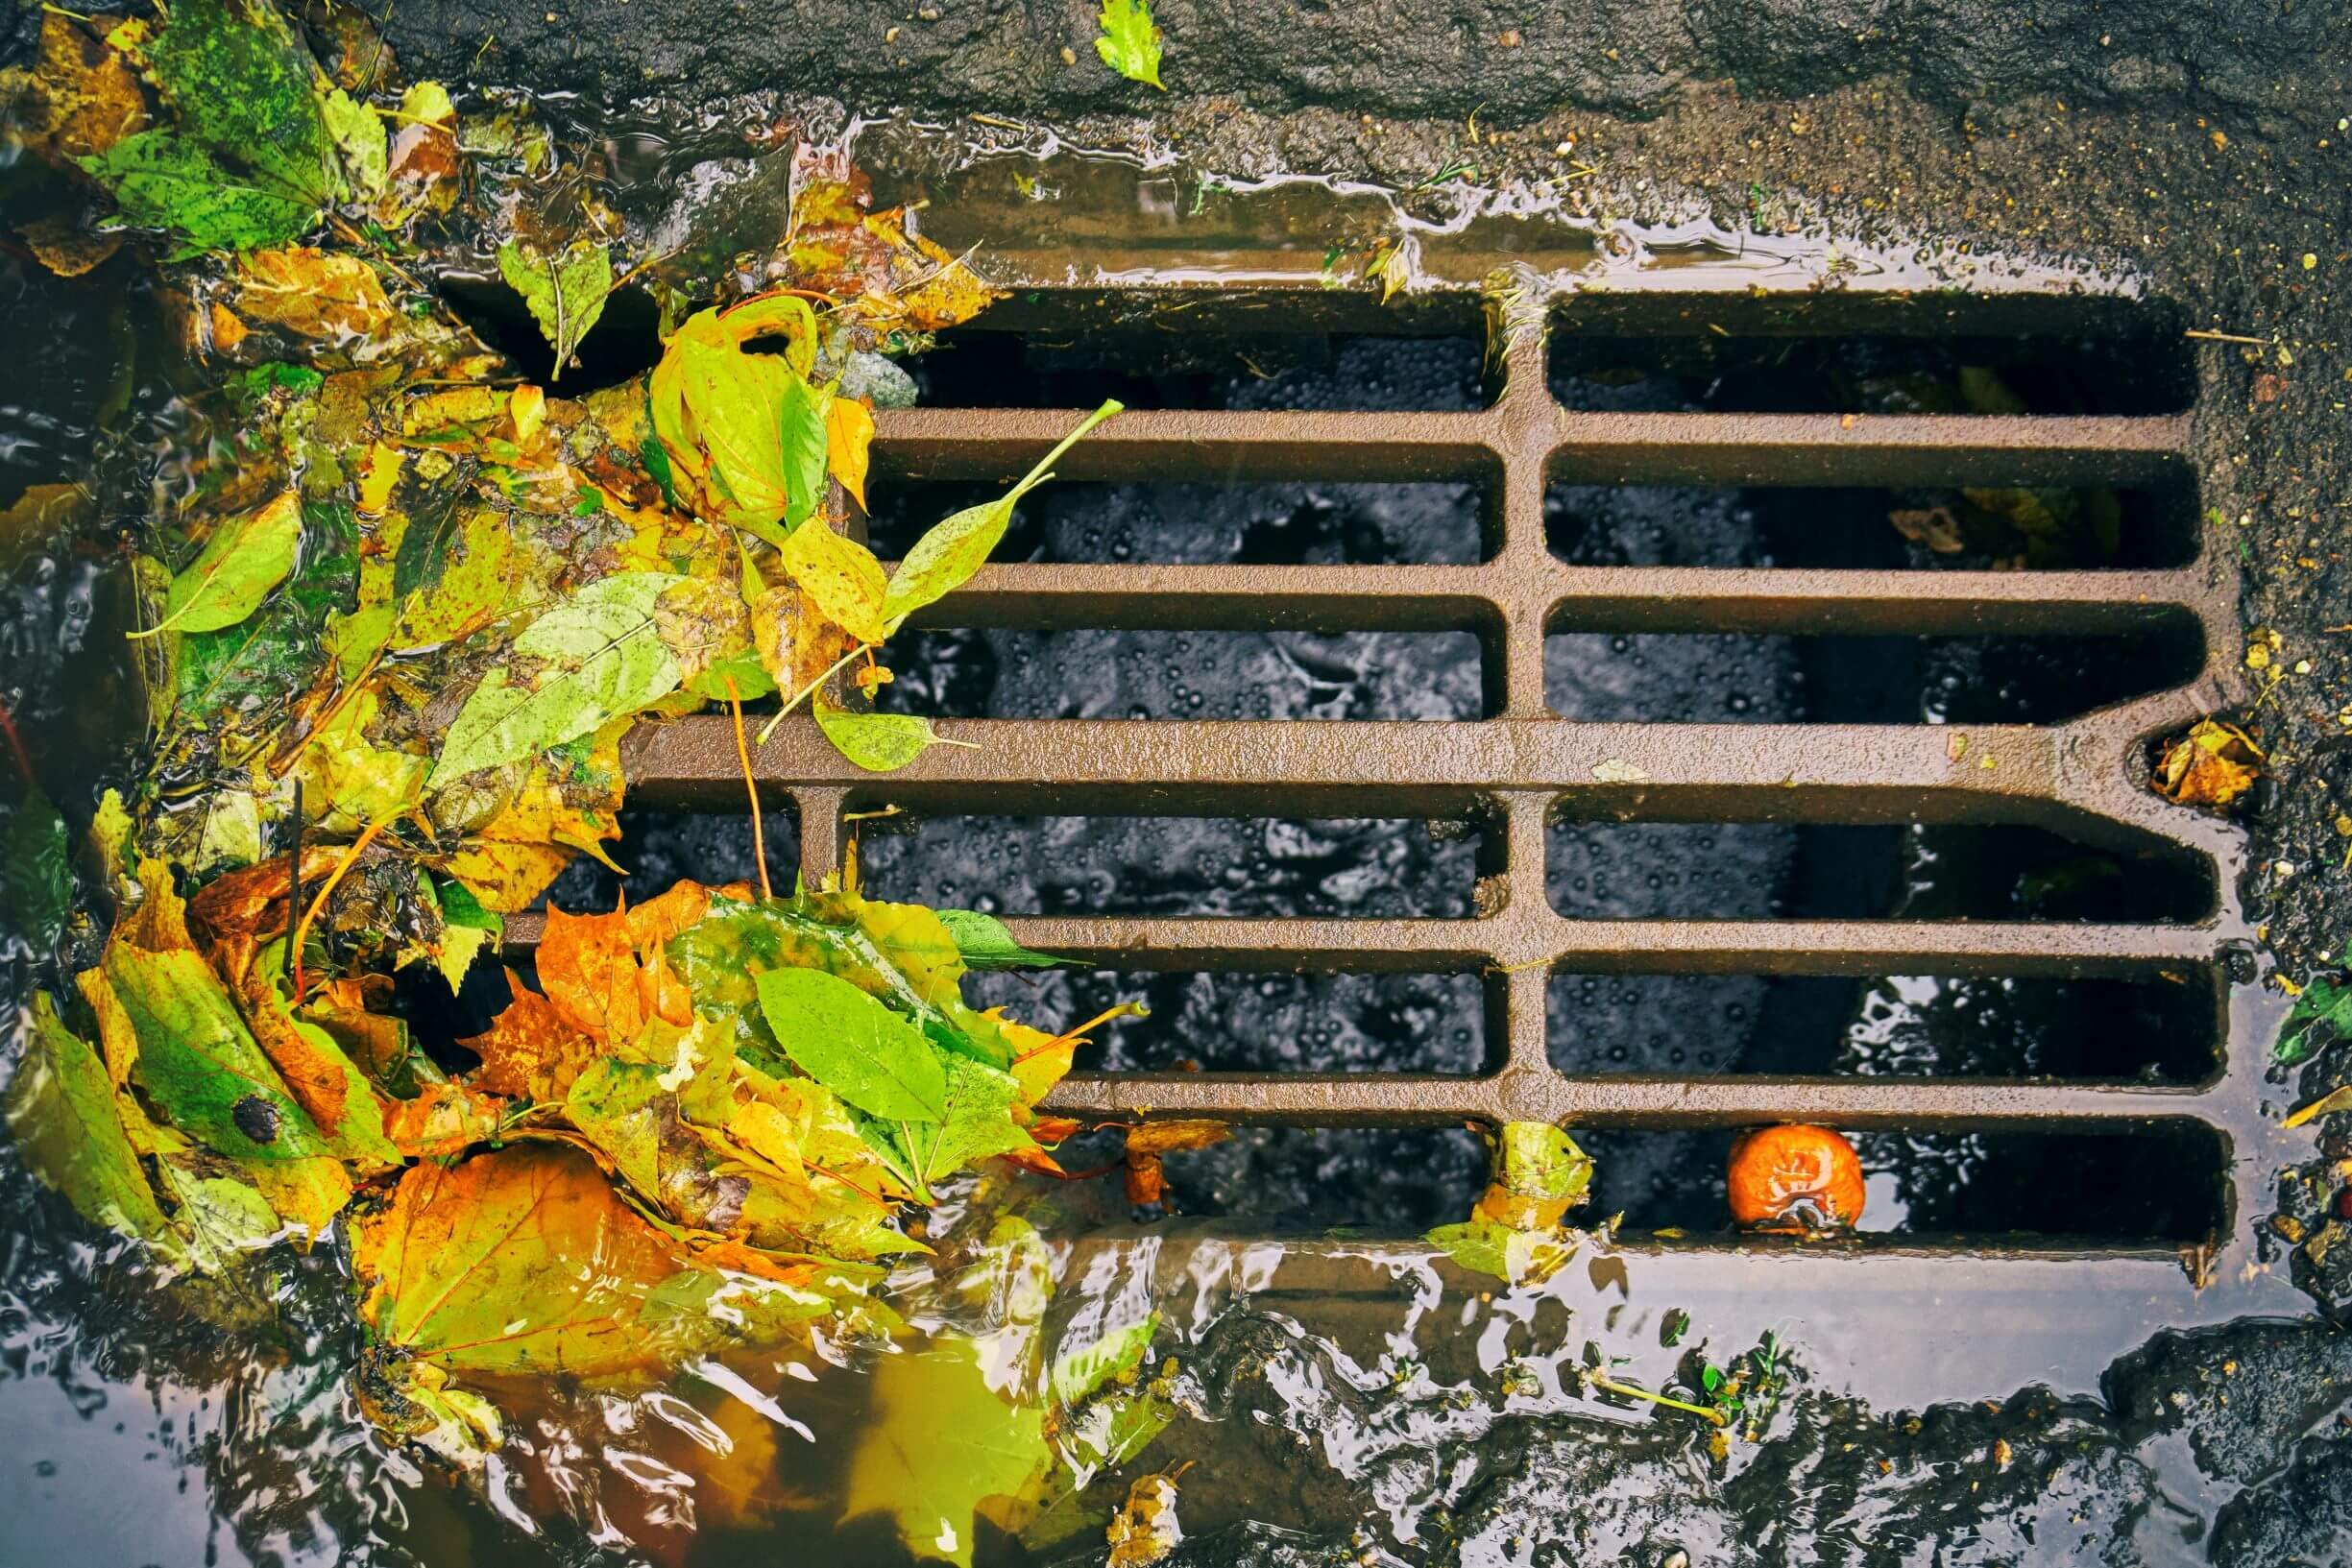 Stormwater drain with autumn leaves on grate